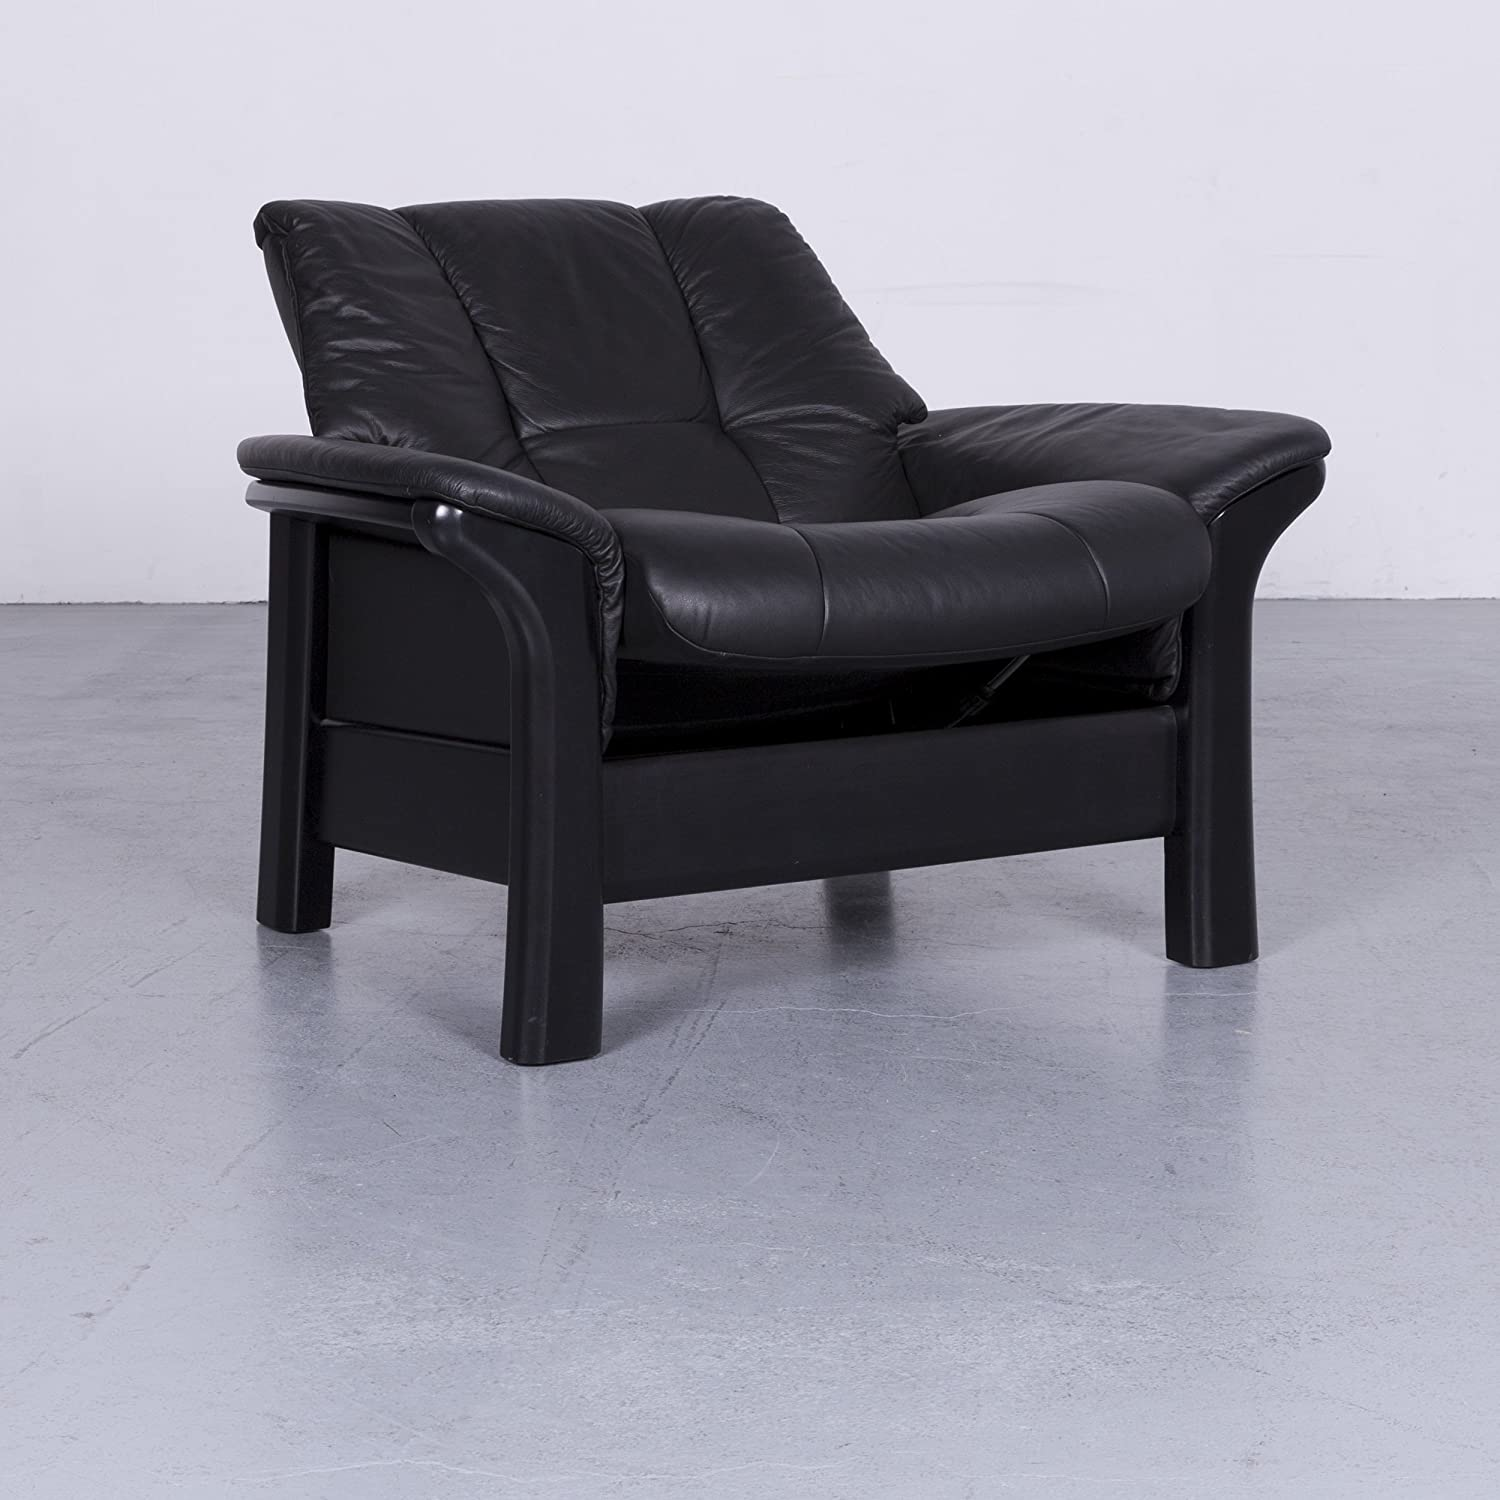 Ekornes Stressless Buckingham Leder Sessel Schwarz Einsitzer ...